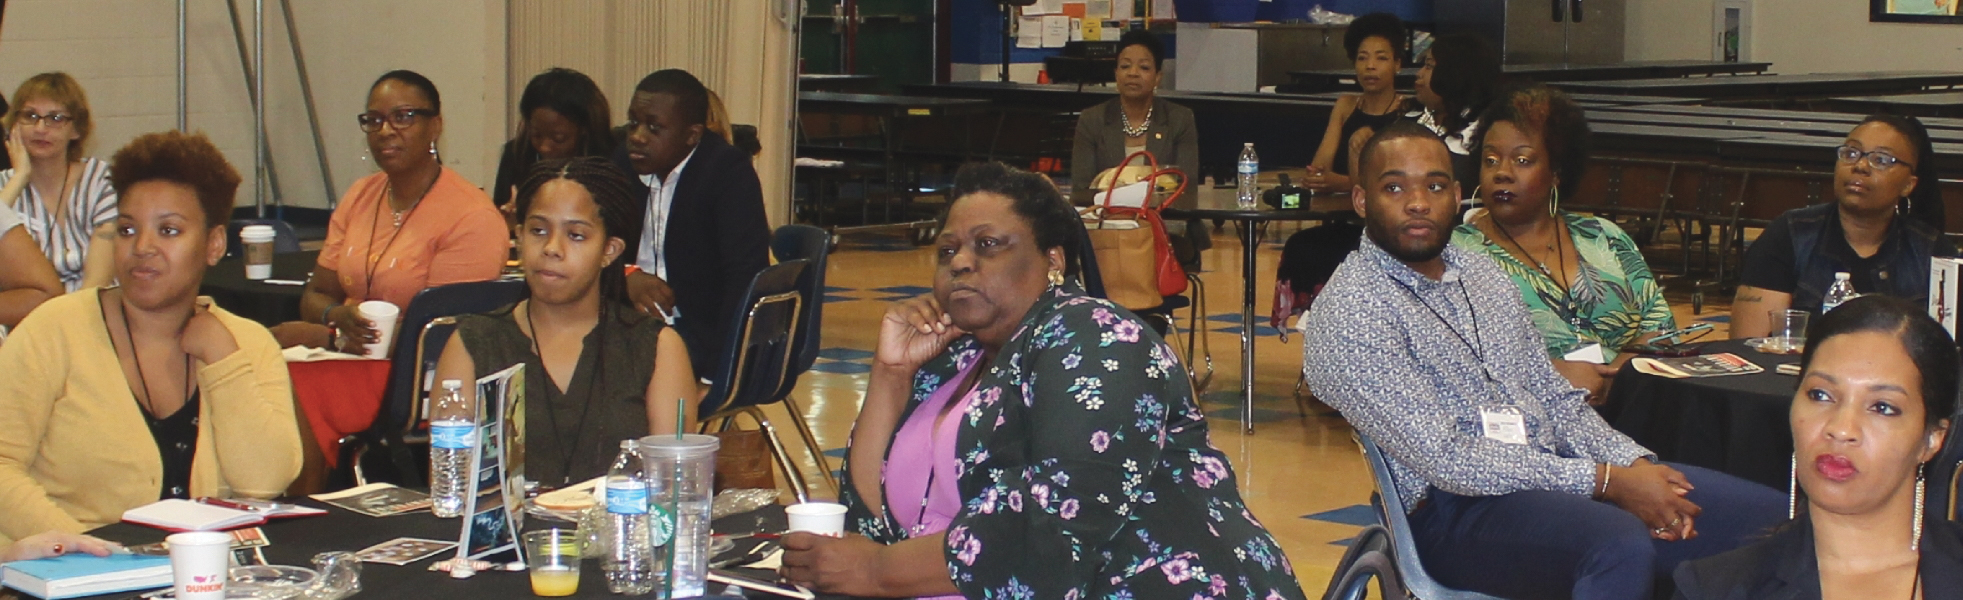 Organizers said the symposium was a small piece of the puzzle in the long-term goal of establishing partnerships with local school officials to facilitate mandatory restorative justice training. (Photo: George W. Tillman Jr.)